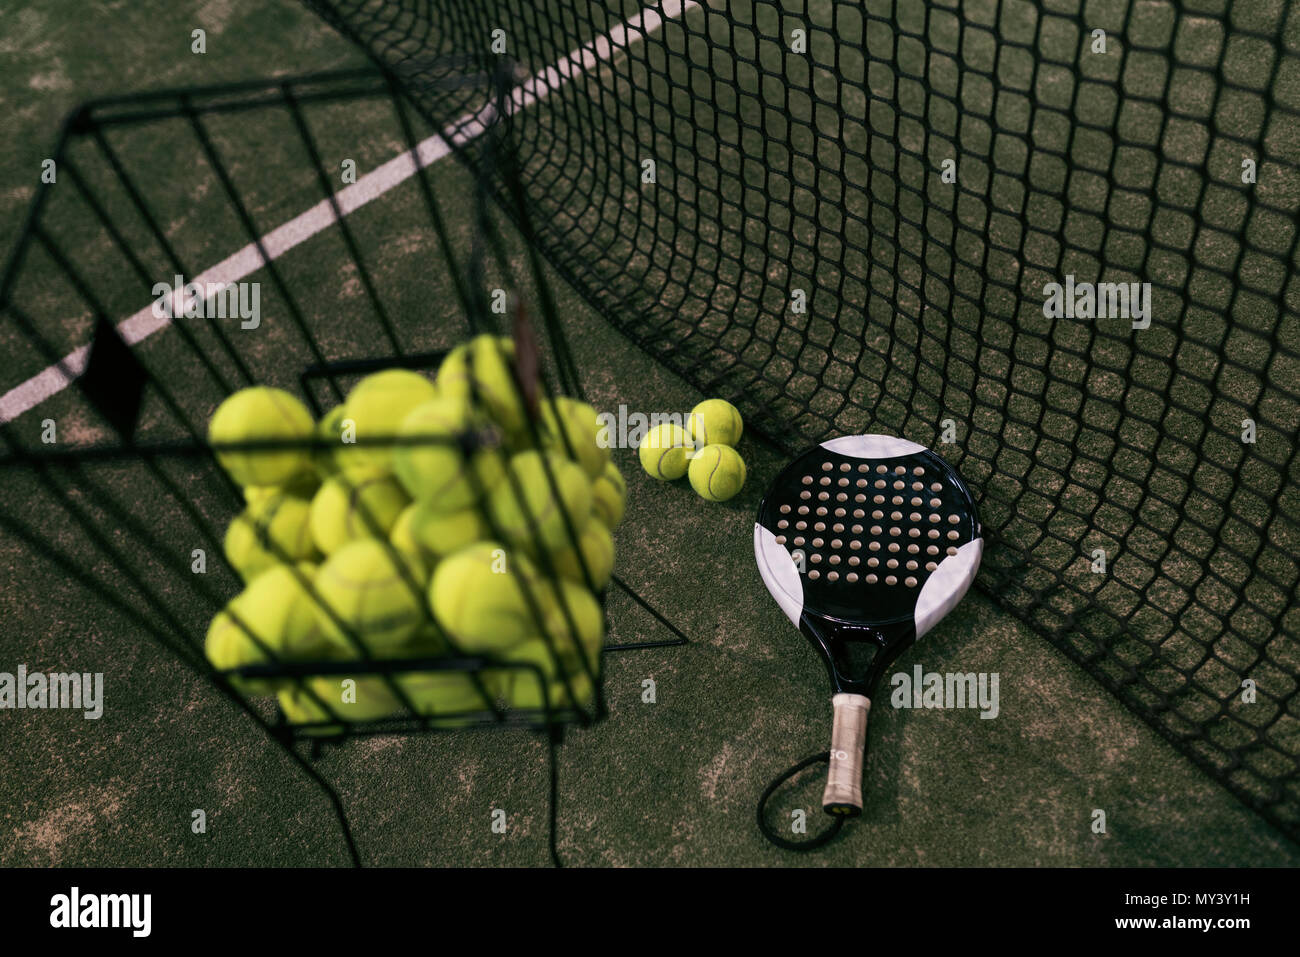 Paddle tennis objects on turf ready for tournament Stock Photo